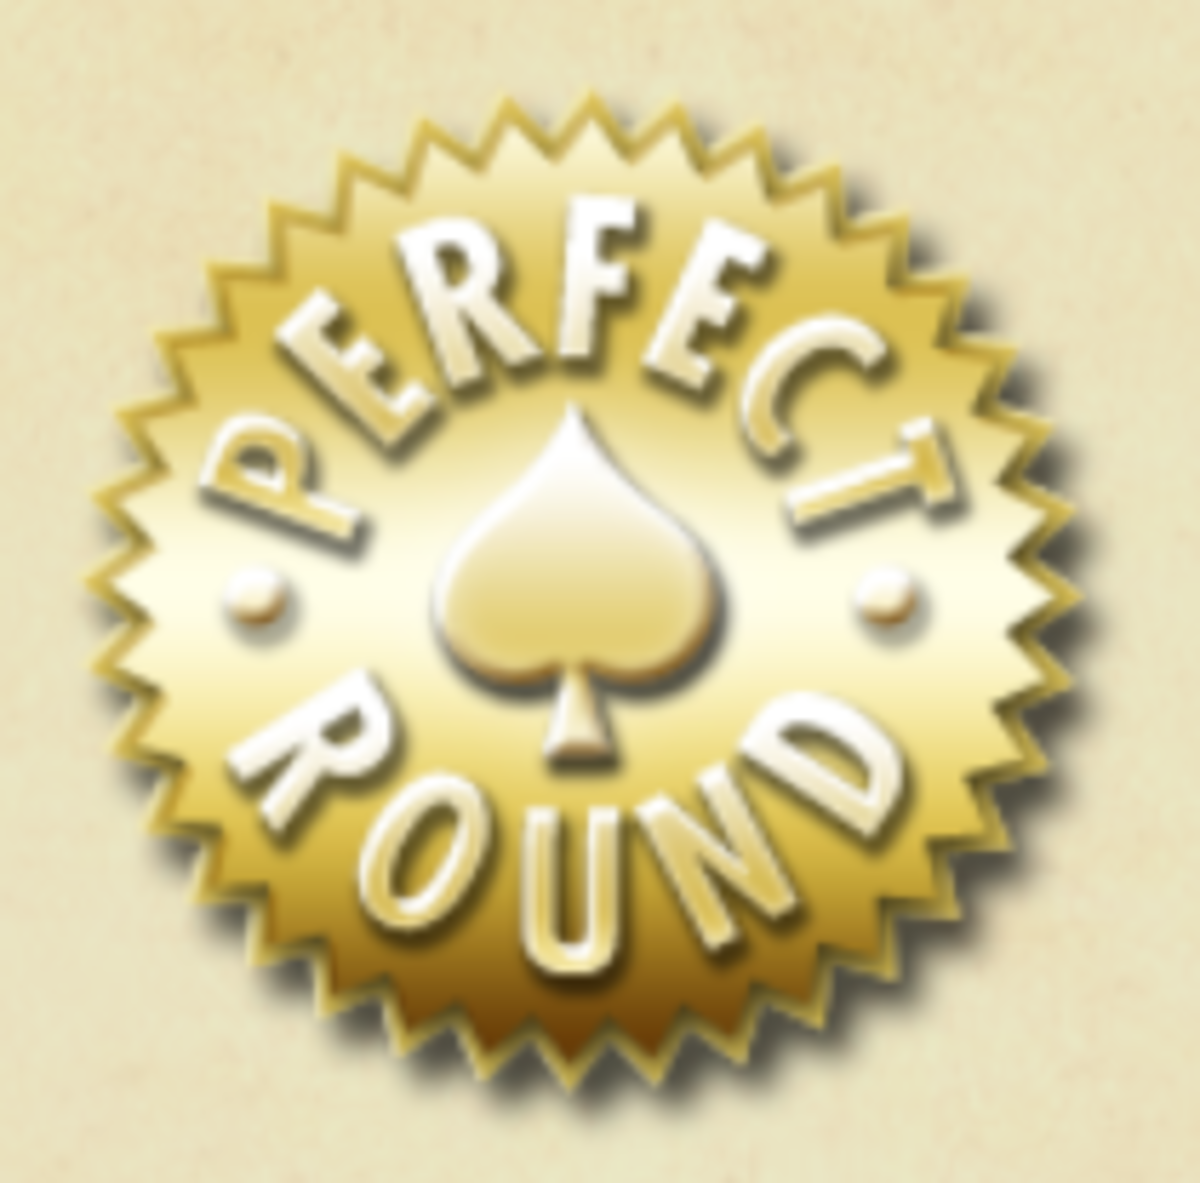 Gold Perfect Round medal.